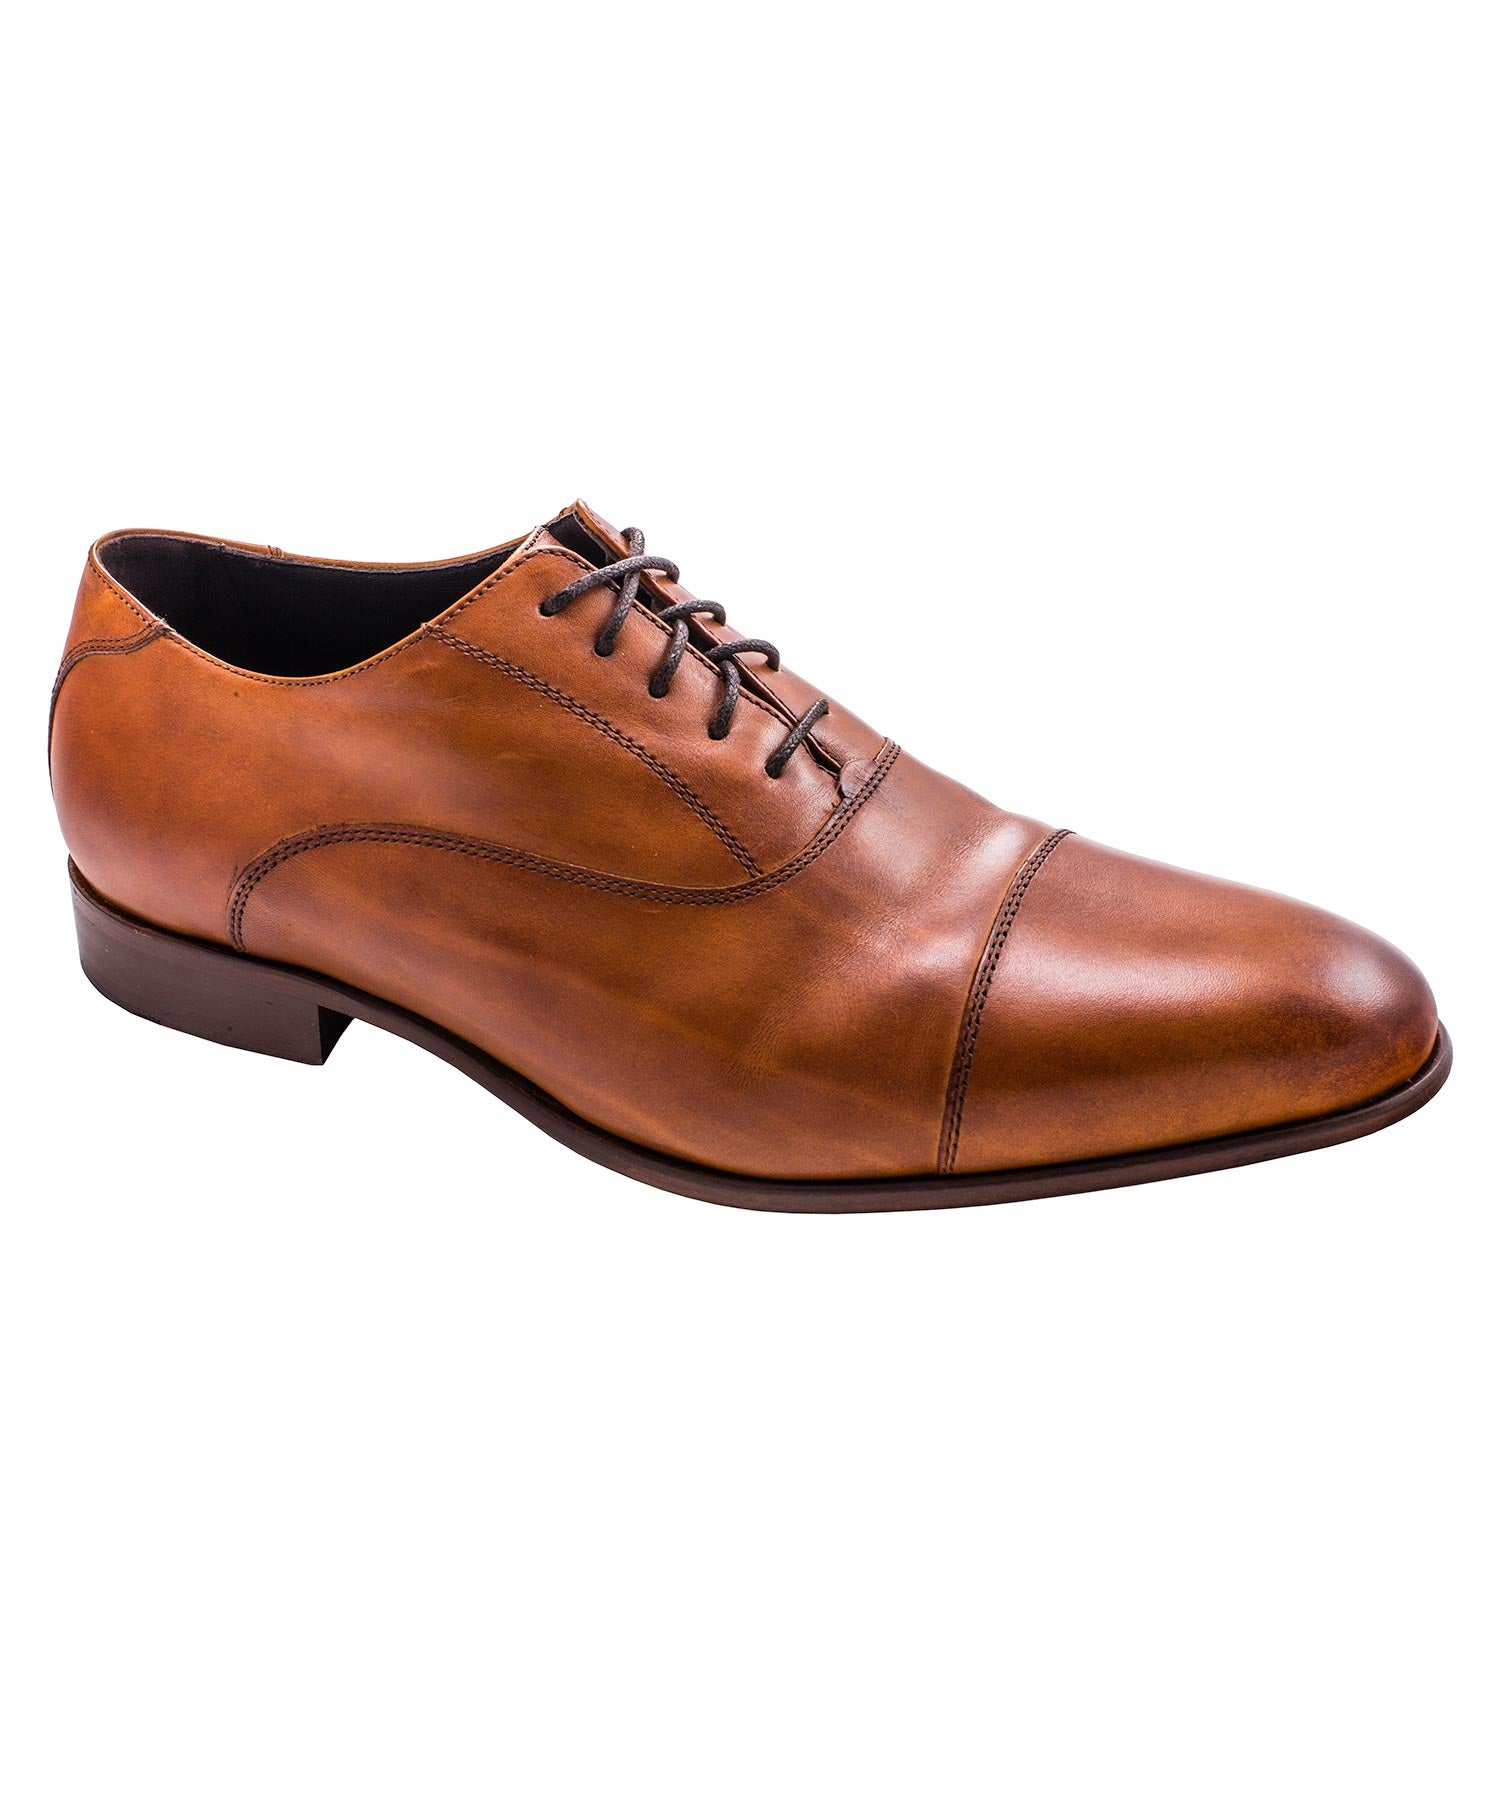 Crust Cuoio Comfort Flex Sole Dress Shoes